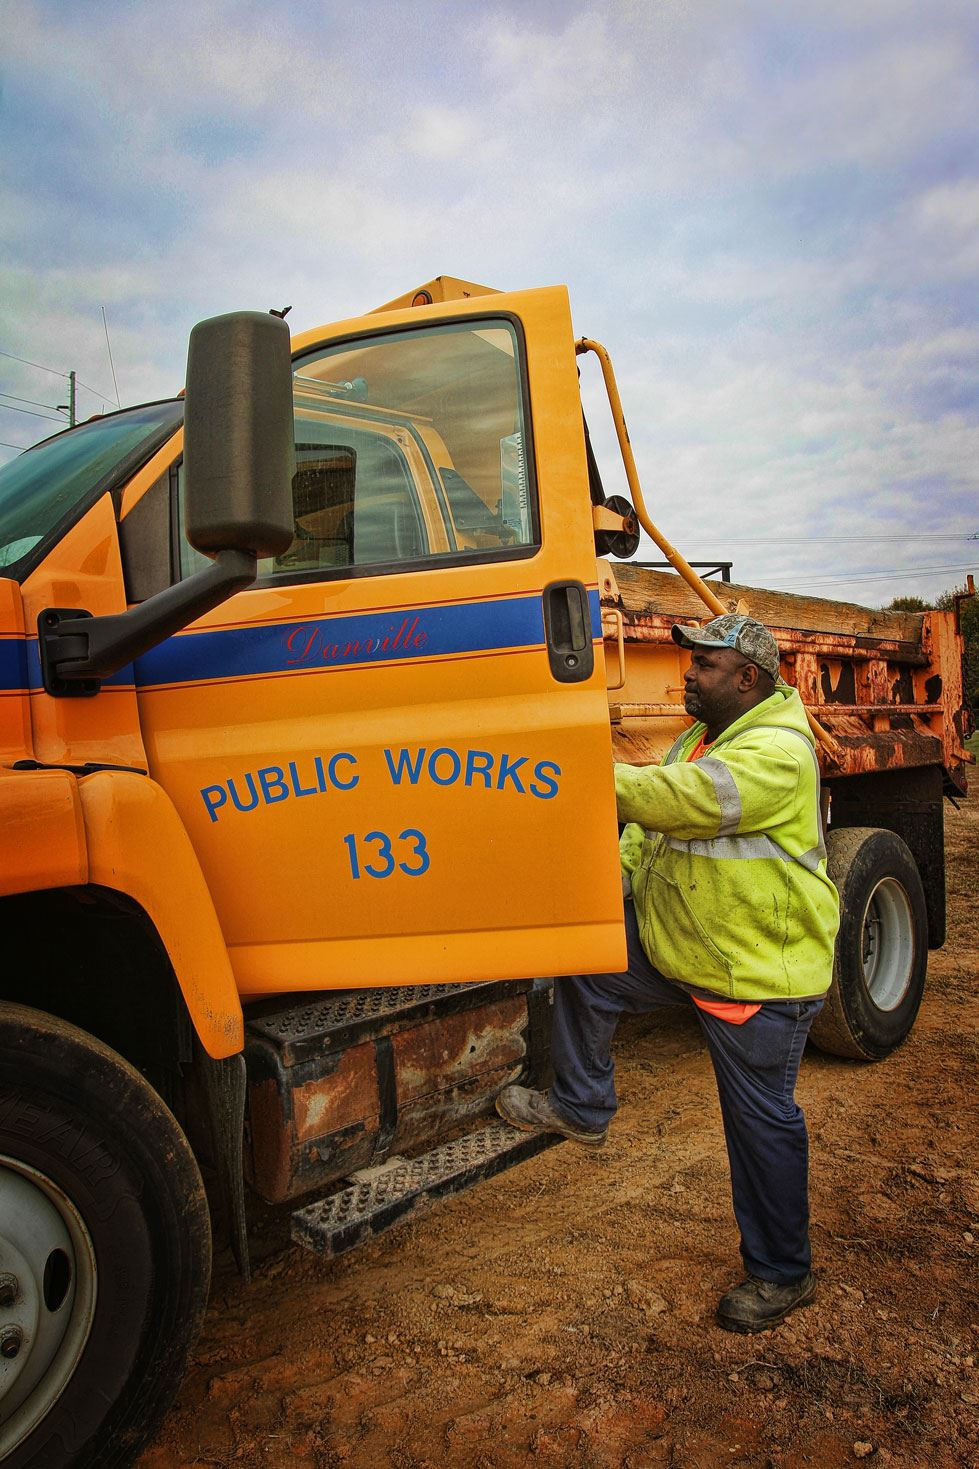 Man in yellow jacket climbing into oragne public works truck